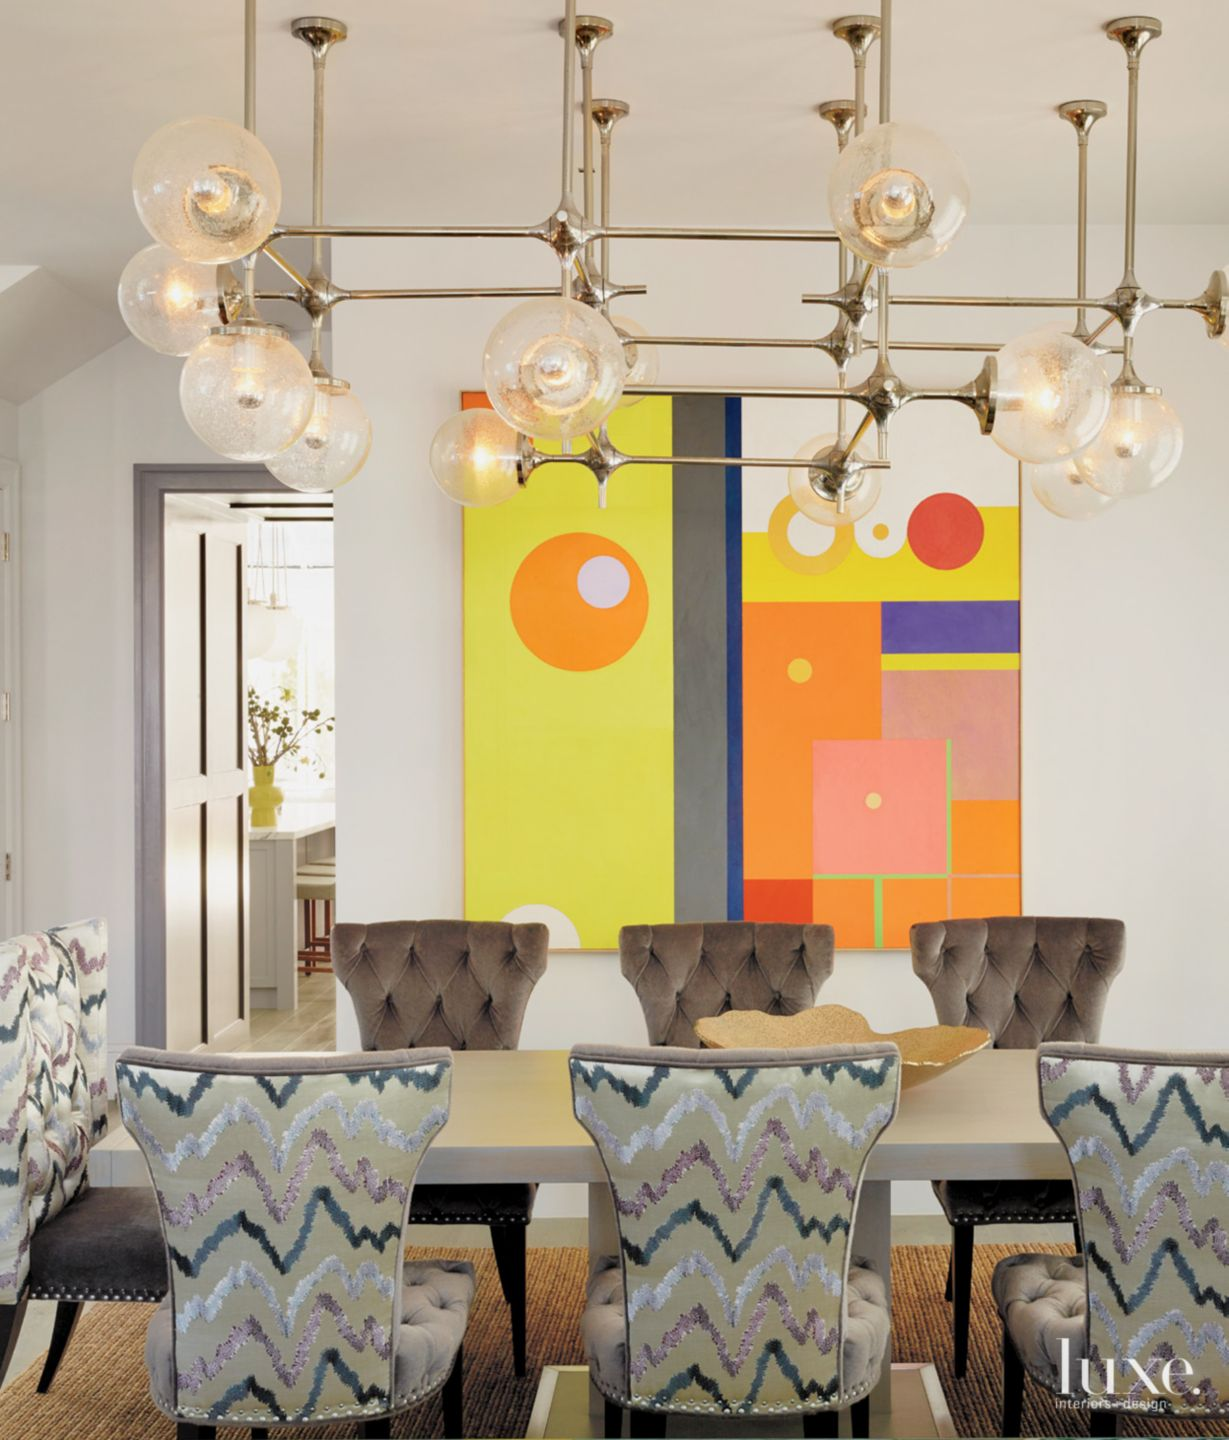 Eclectic Multi-Colored Dining Area with Vintage Light Fixture